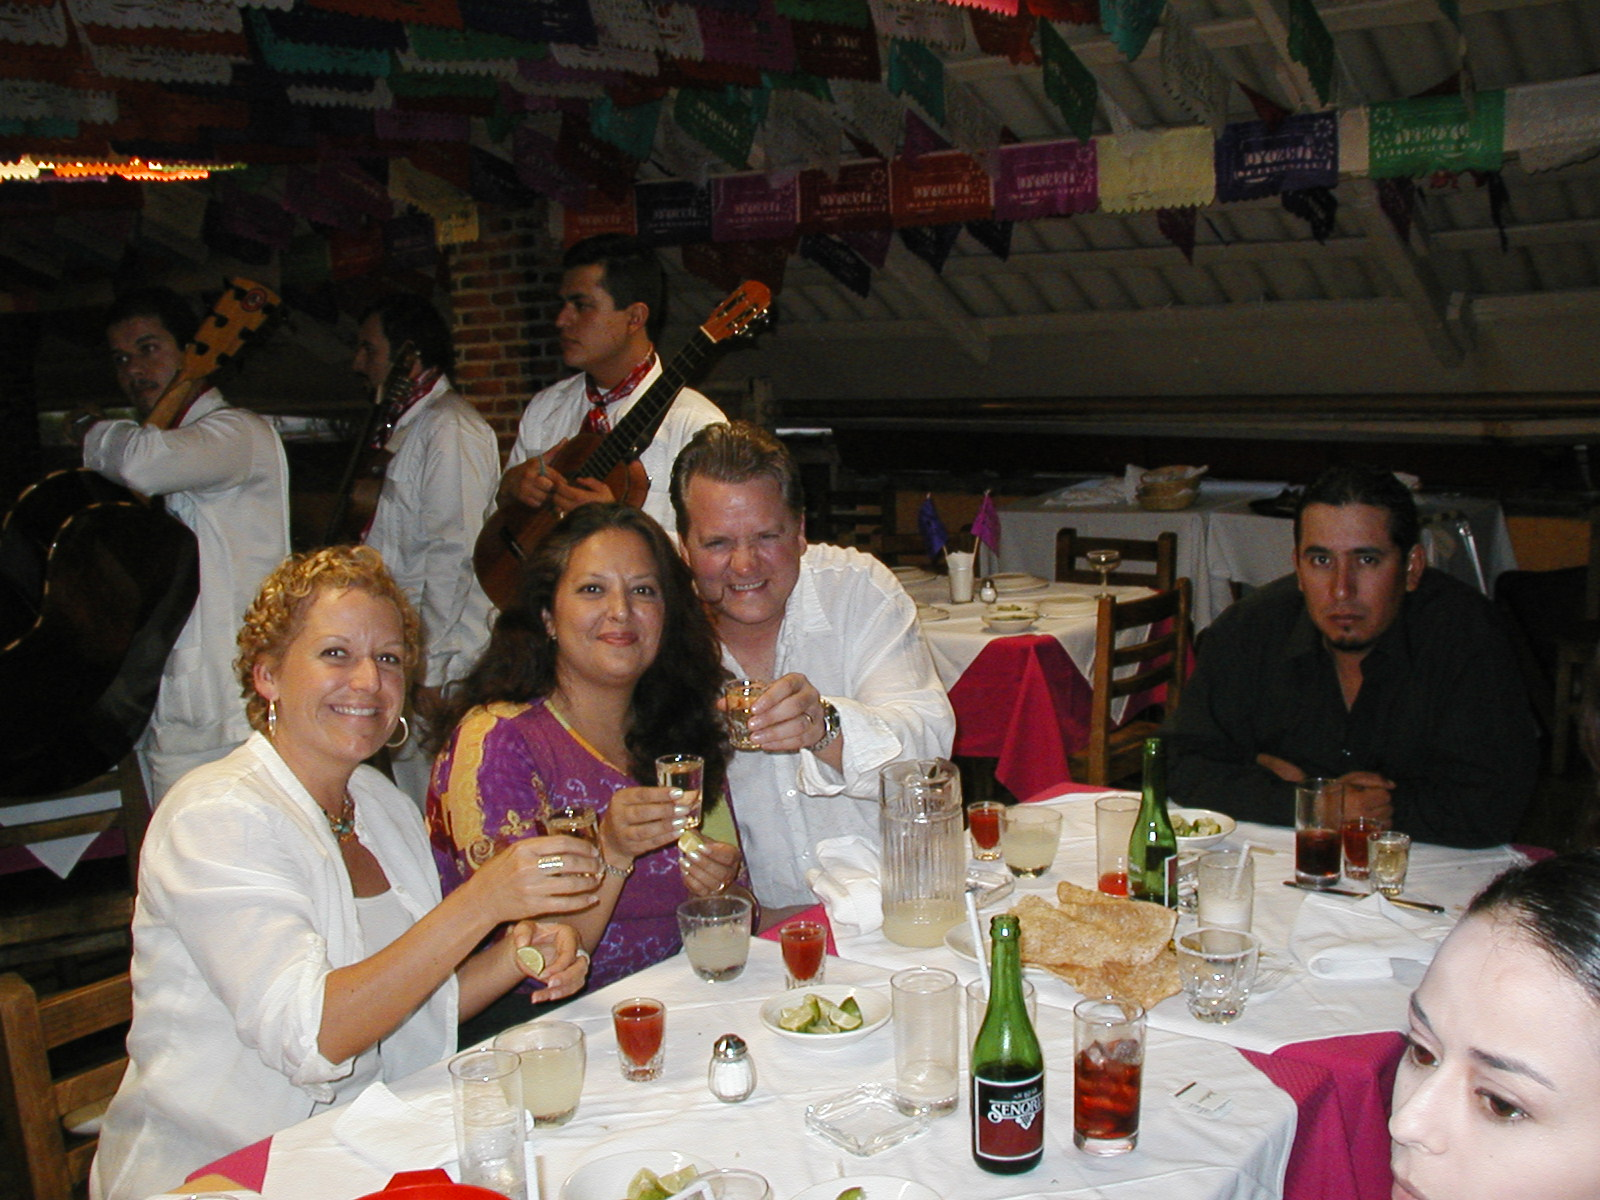 arroyo-restaurant-mexico-city.jpg